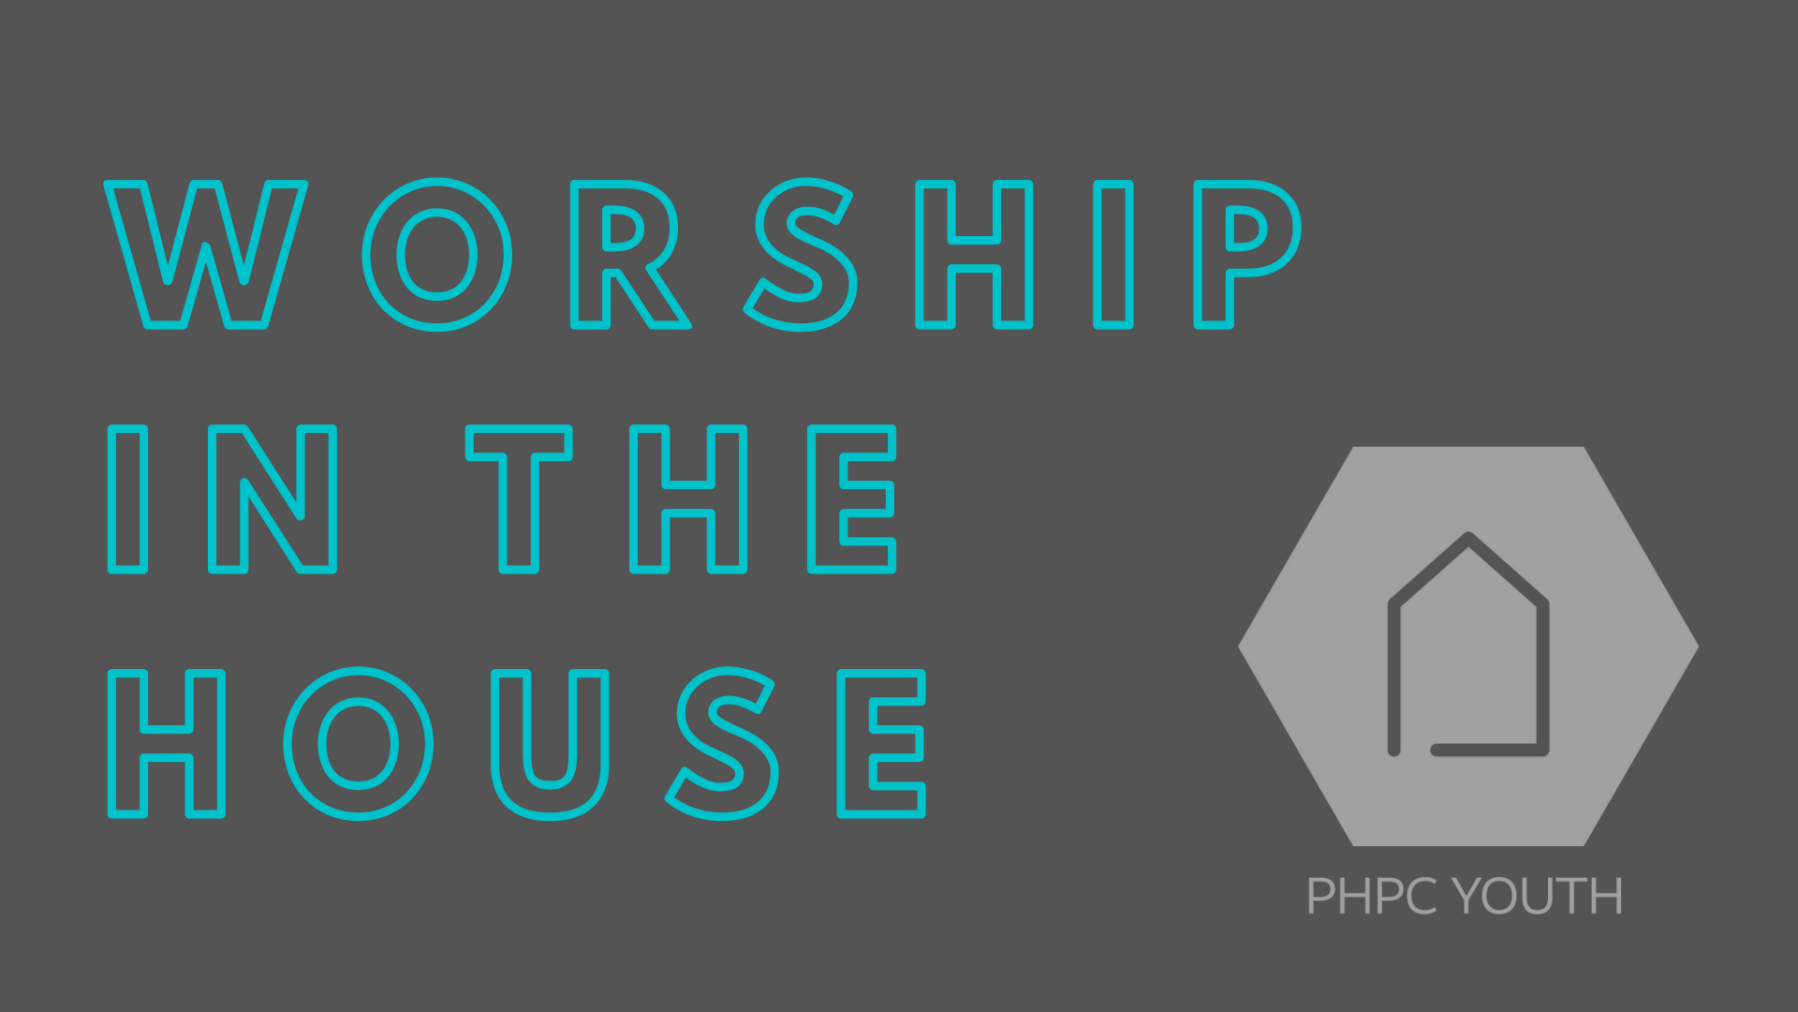 Youth Worship in the House